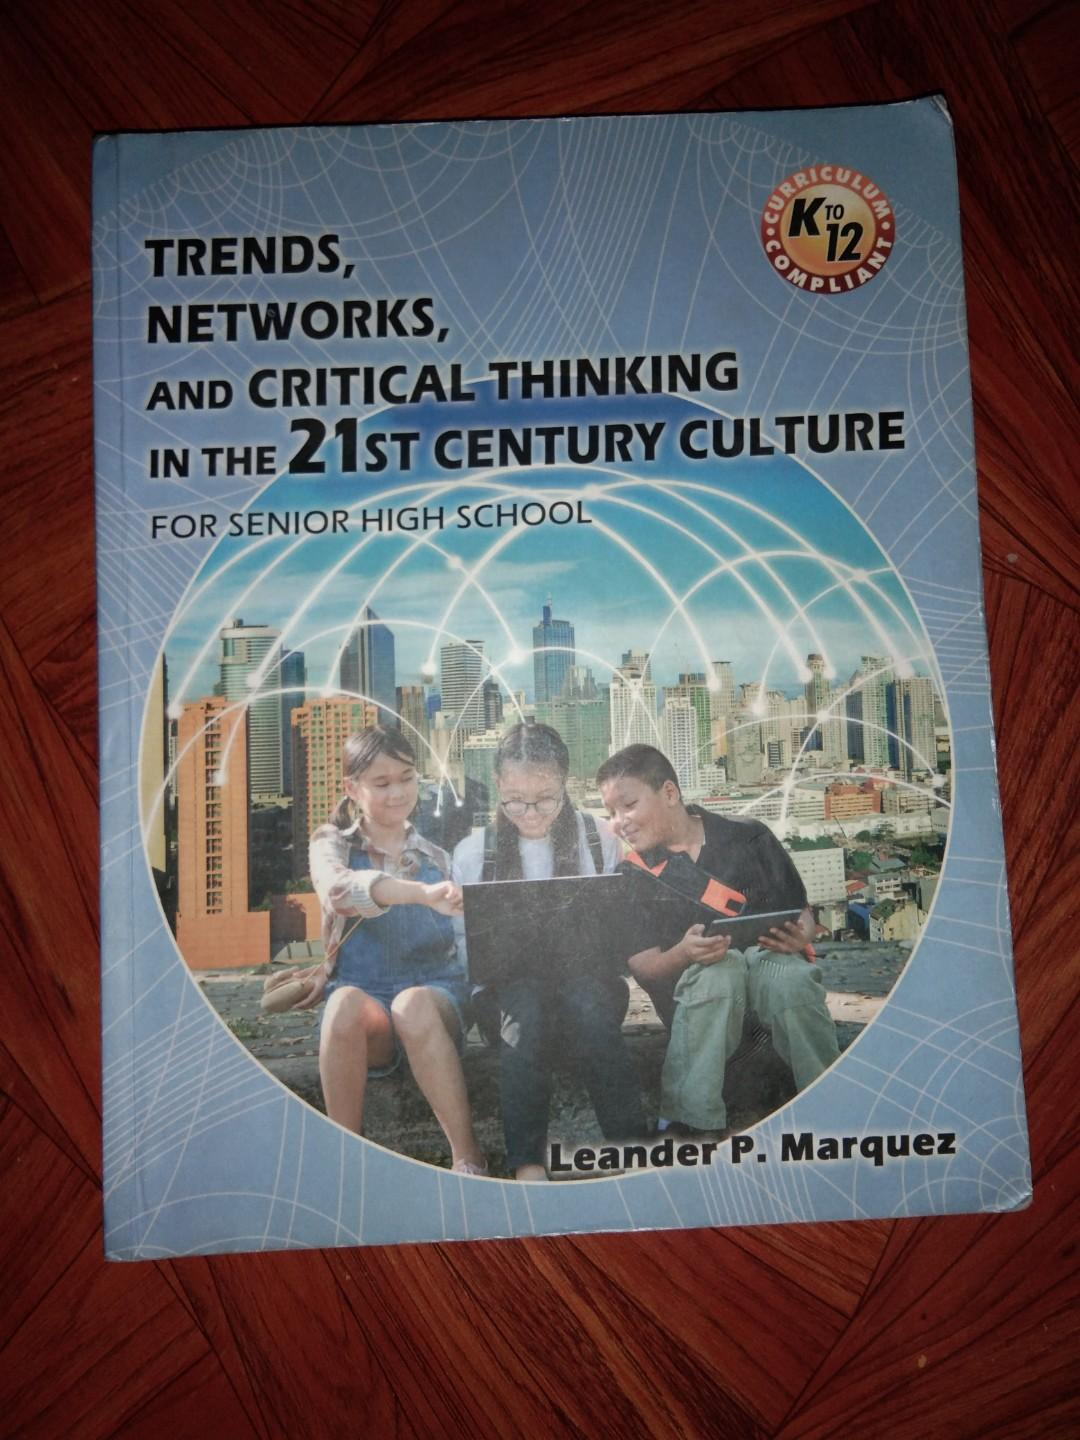 Trends, networks, and critical thinking in the 21st century culture (book for shs)